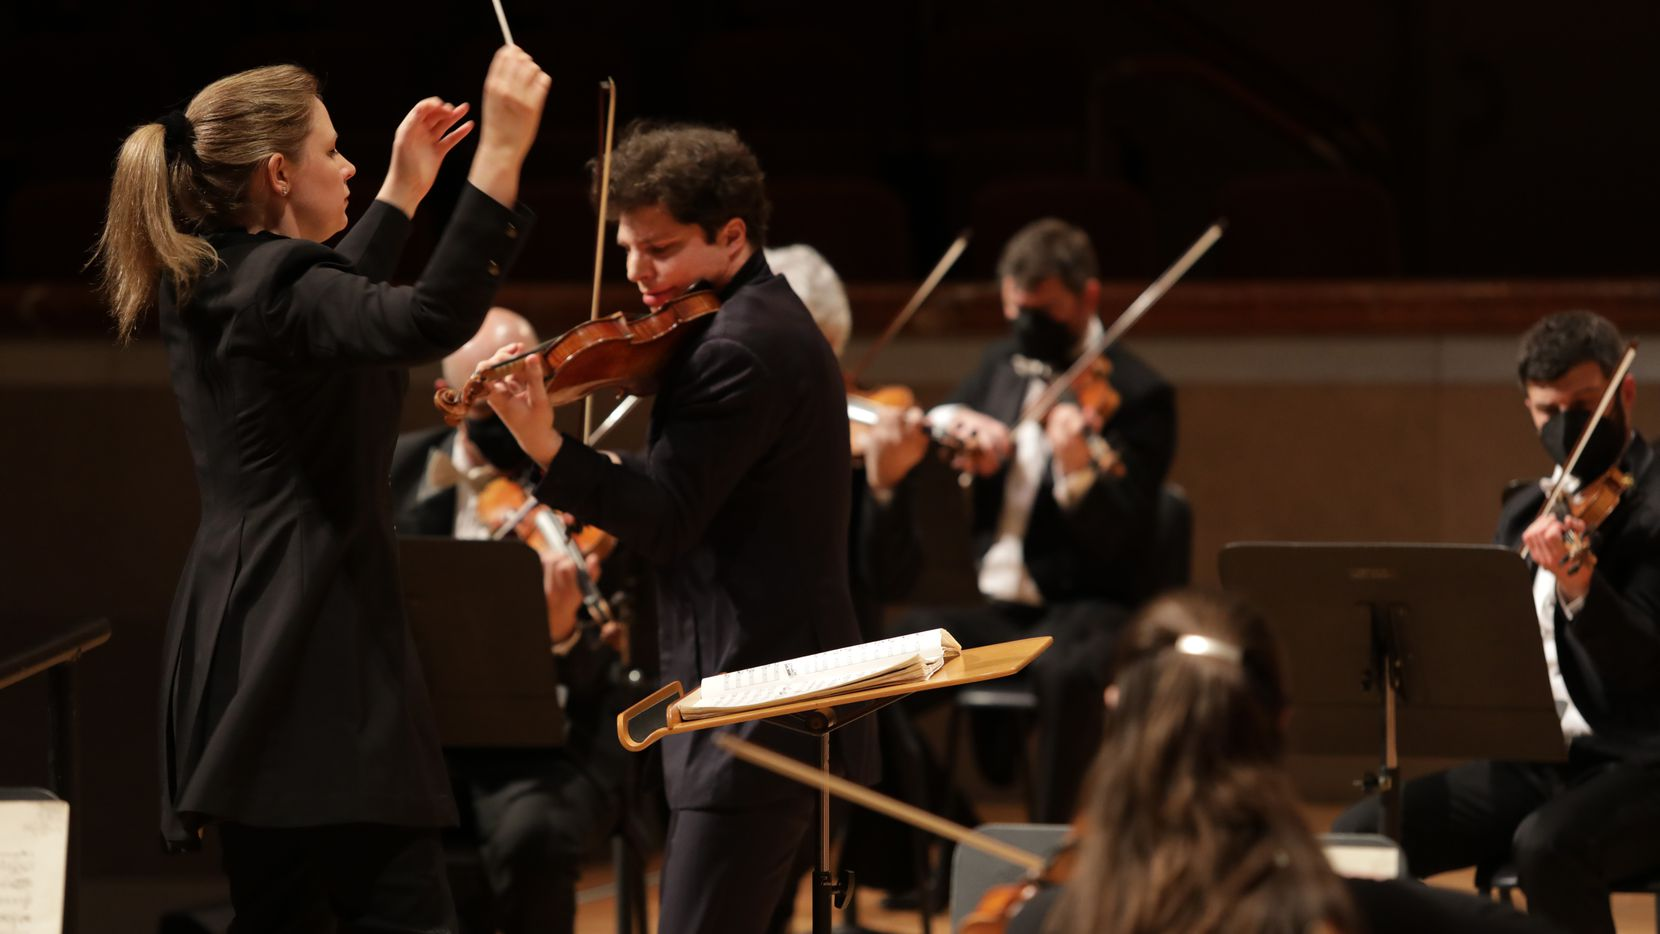 Principal guest conductor Gemma New (left) and violin soloist Augustin Hadelich perform during a Dallas Symphony Orchestra concert at the Meyerson Symphony Center.